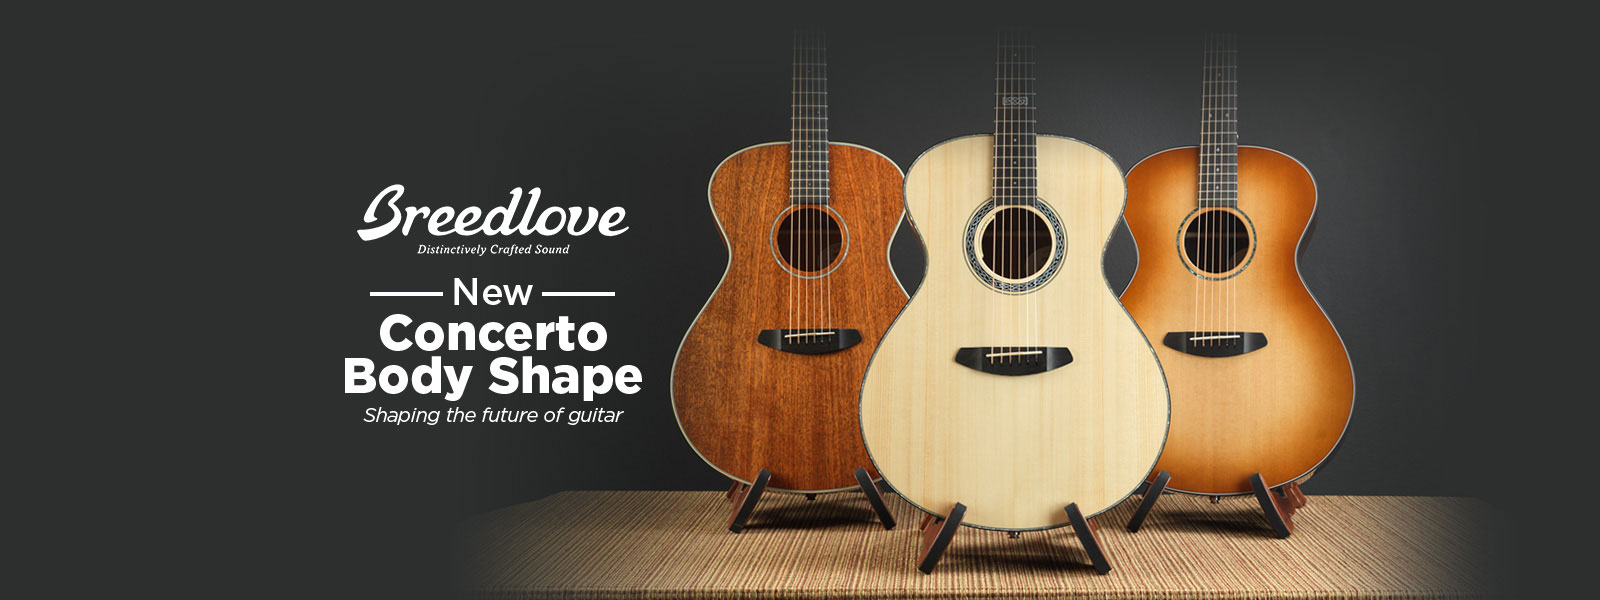 Breedlove Concerto Series Acoustic Guitars